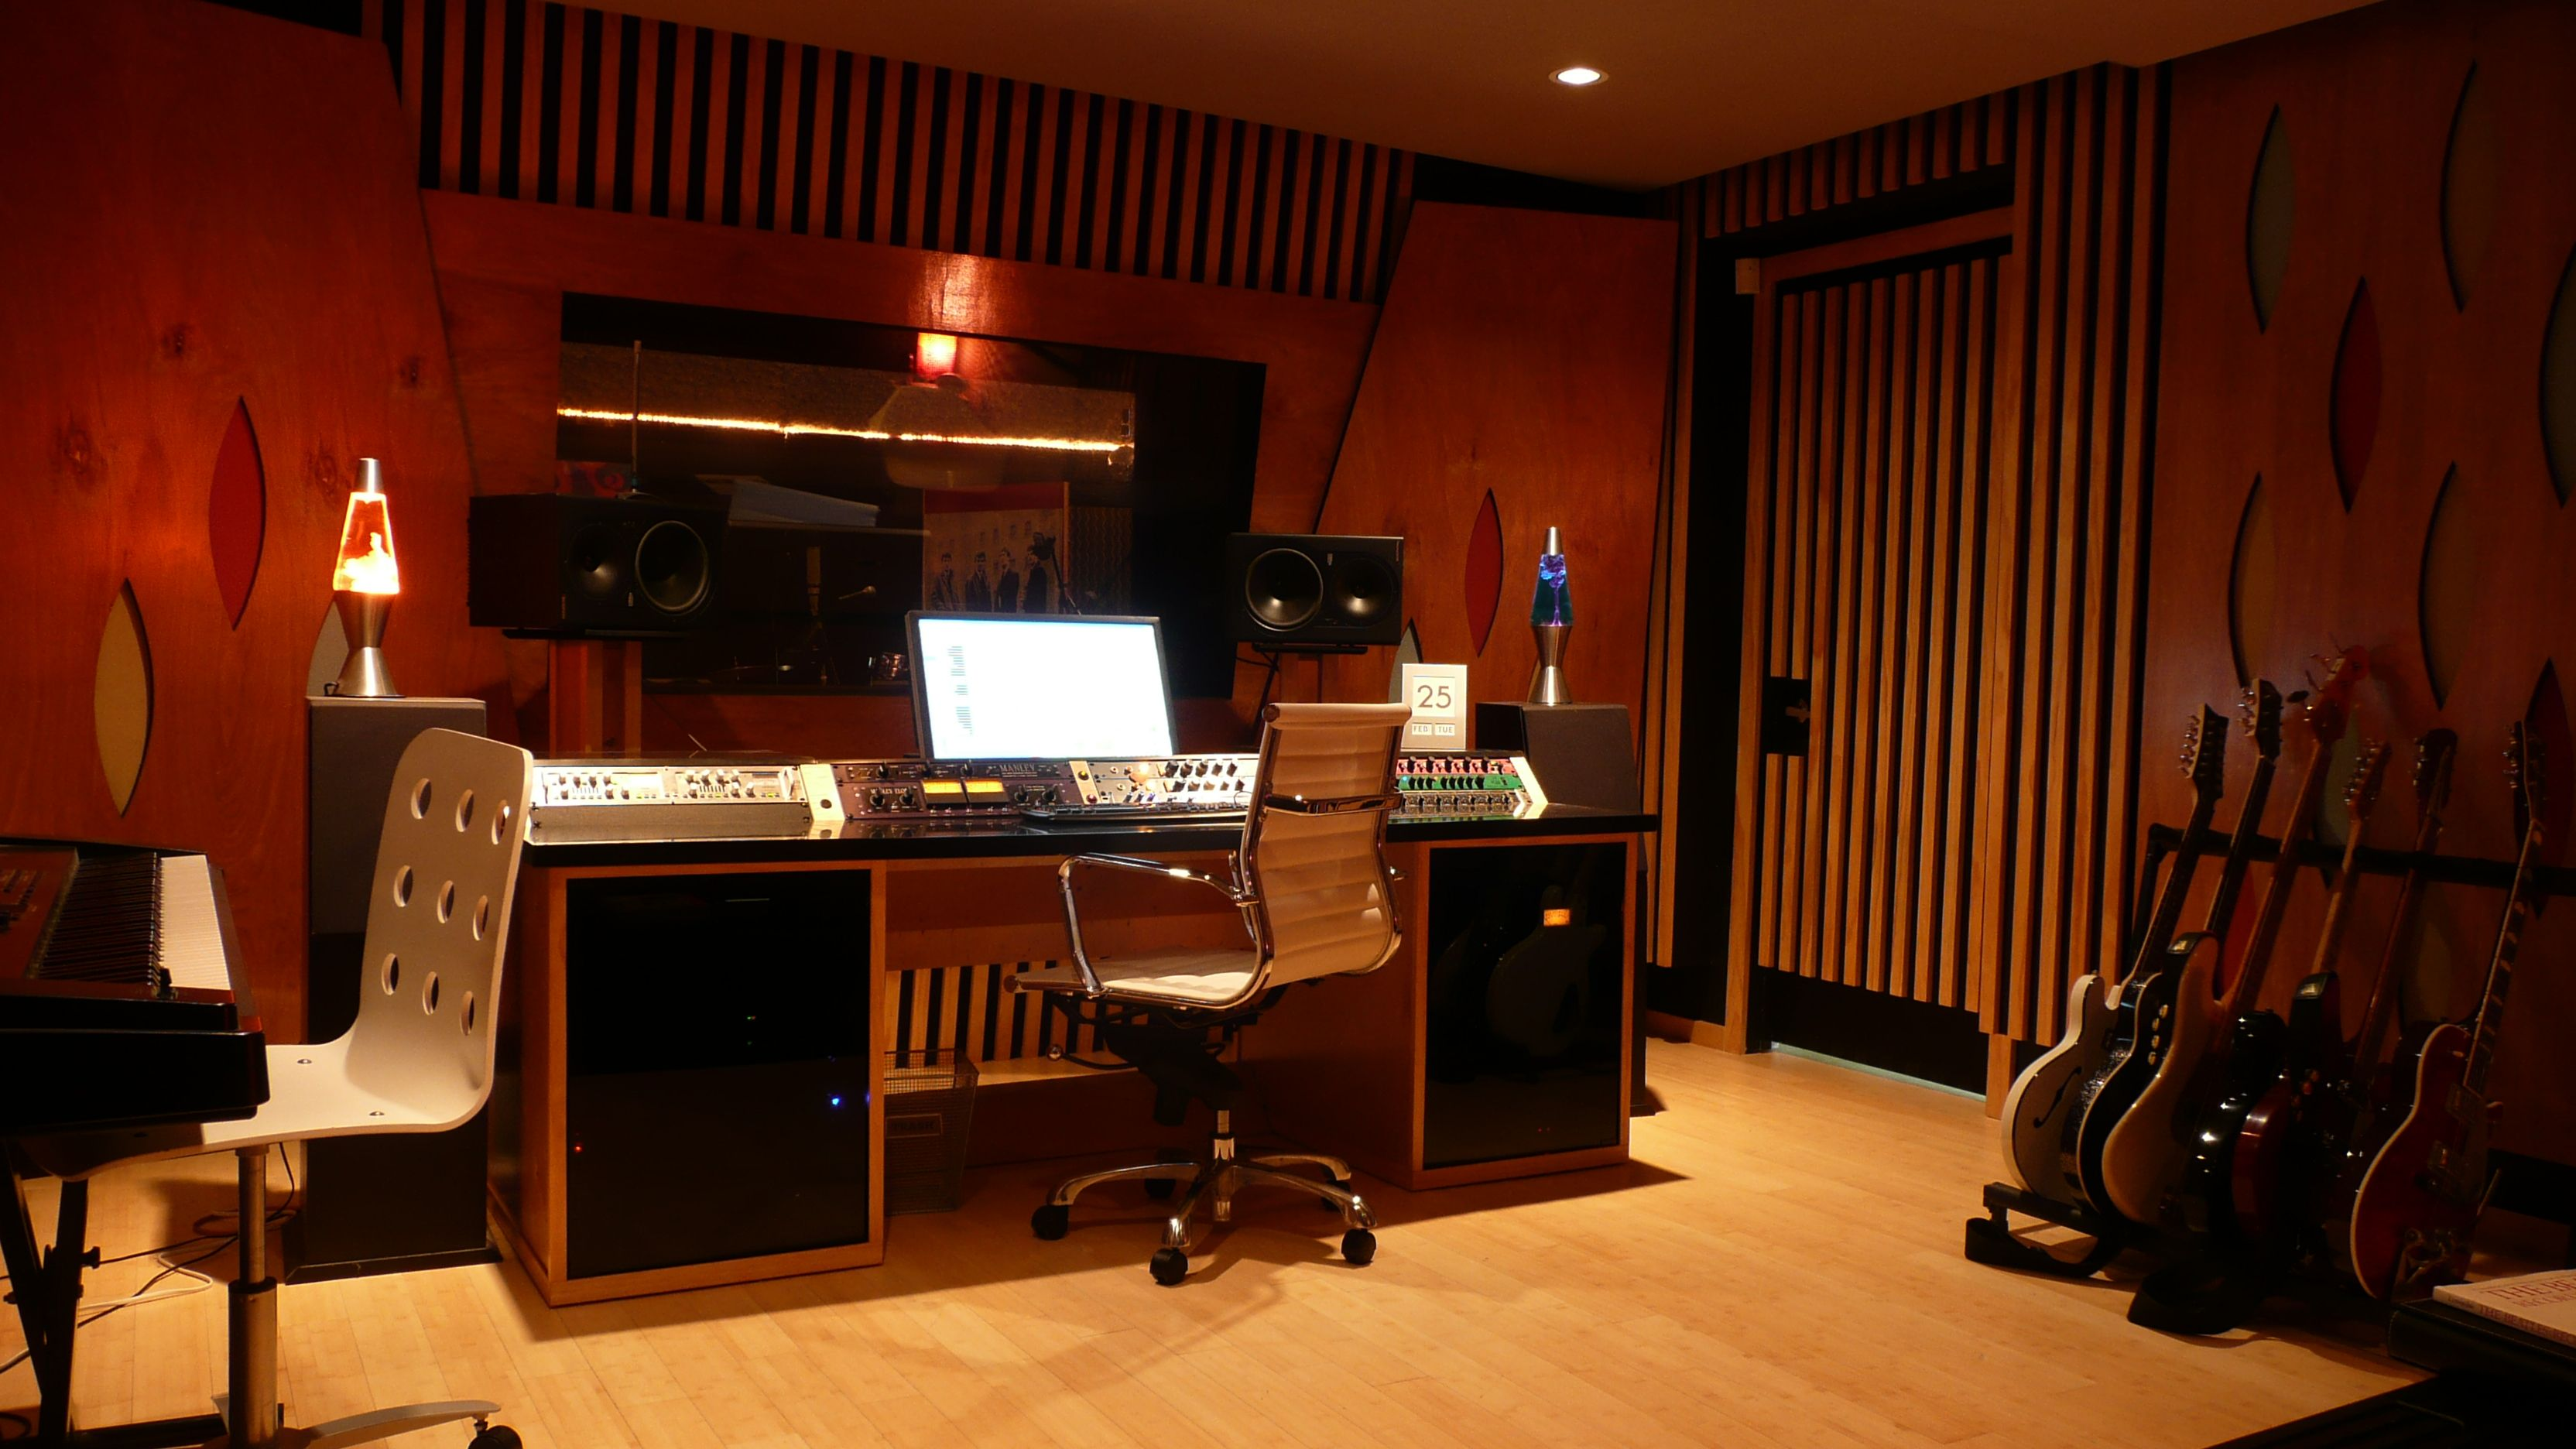 Recording Studio Design Ideas On Interior Design Home Recording